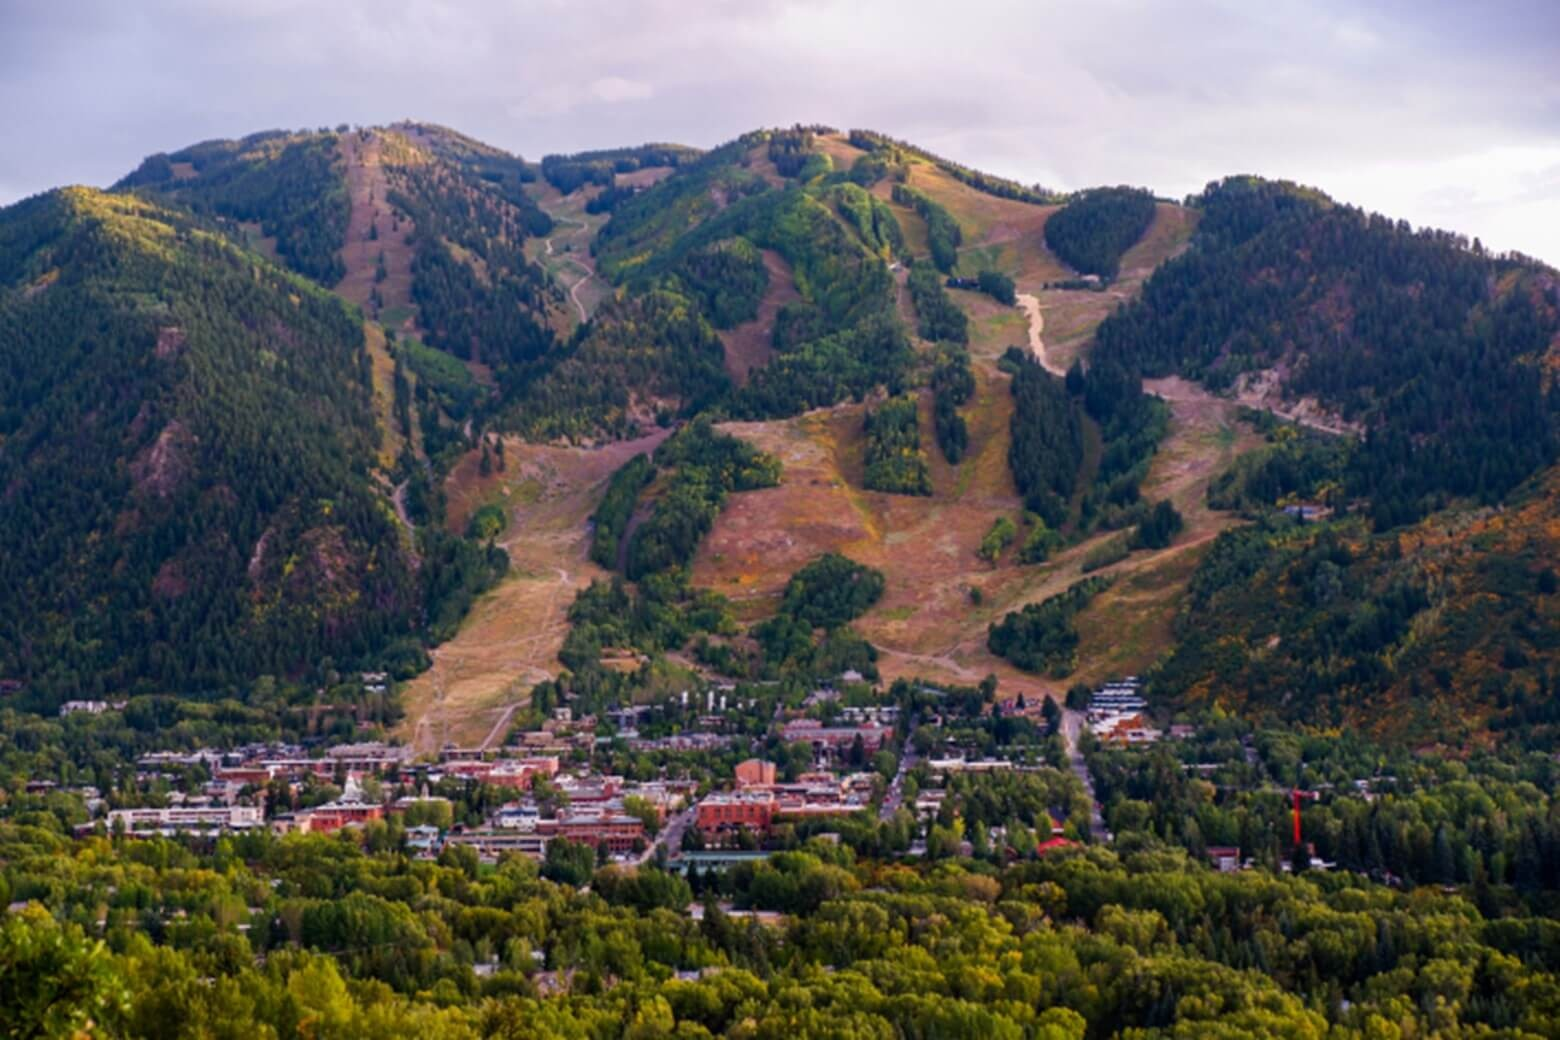 Real estate frenzy in Colorado resorts is changing mountain character, Colorado Sun Image